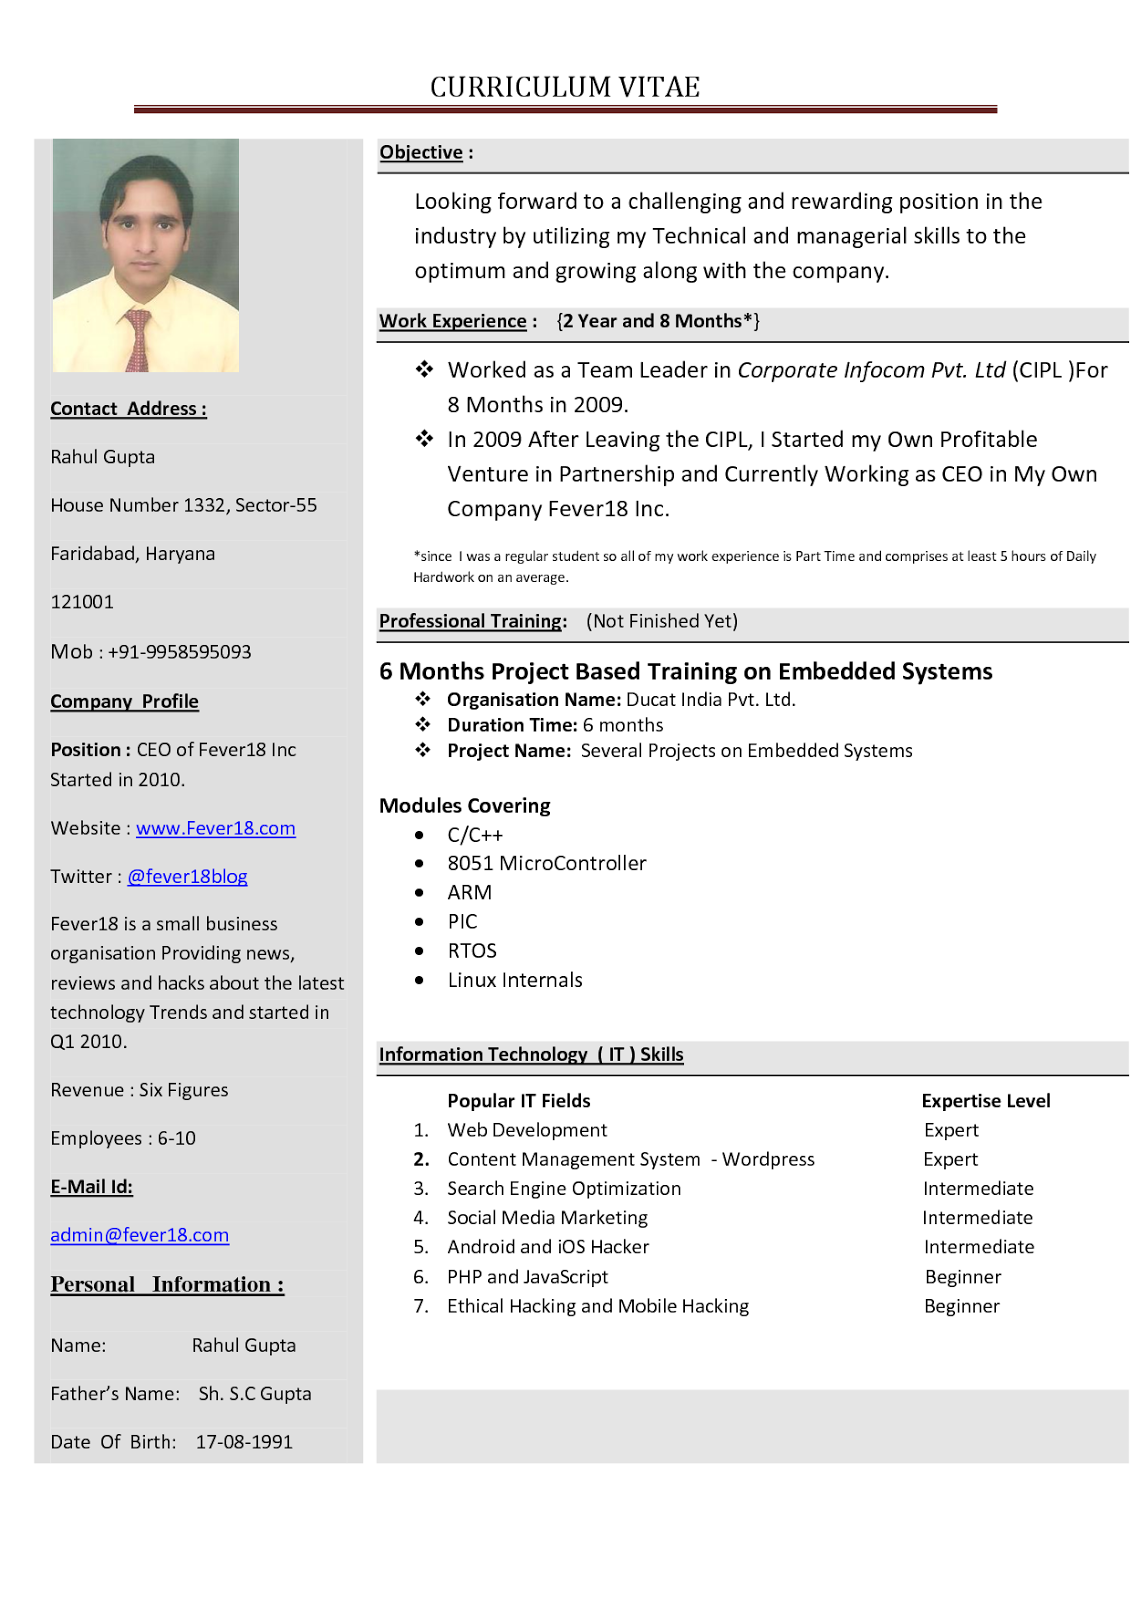 Amazing Resume Help Free Resume Builder Online Resume Upload Or Create Your Resume  On Monster Get Tips  How Can I Make A Resume